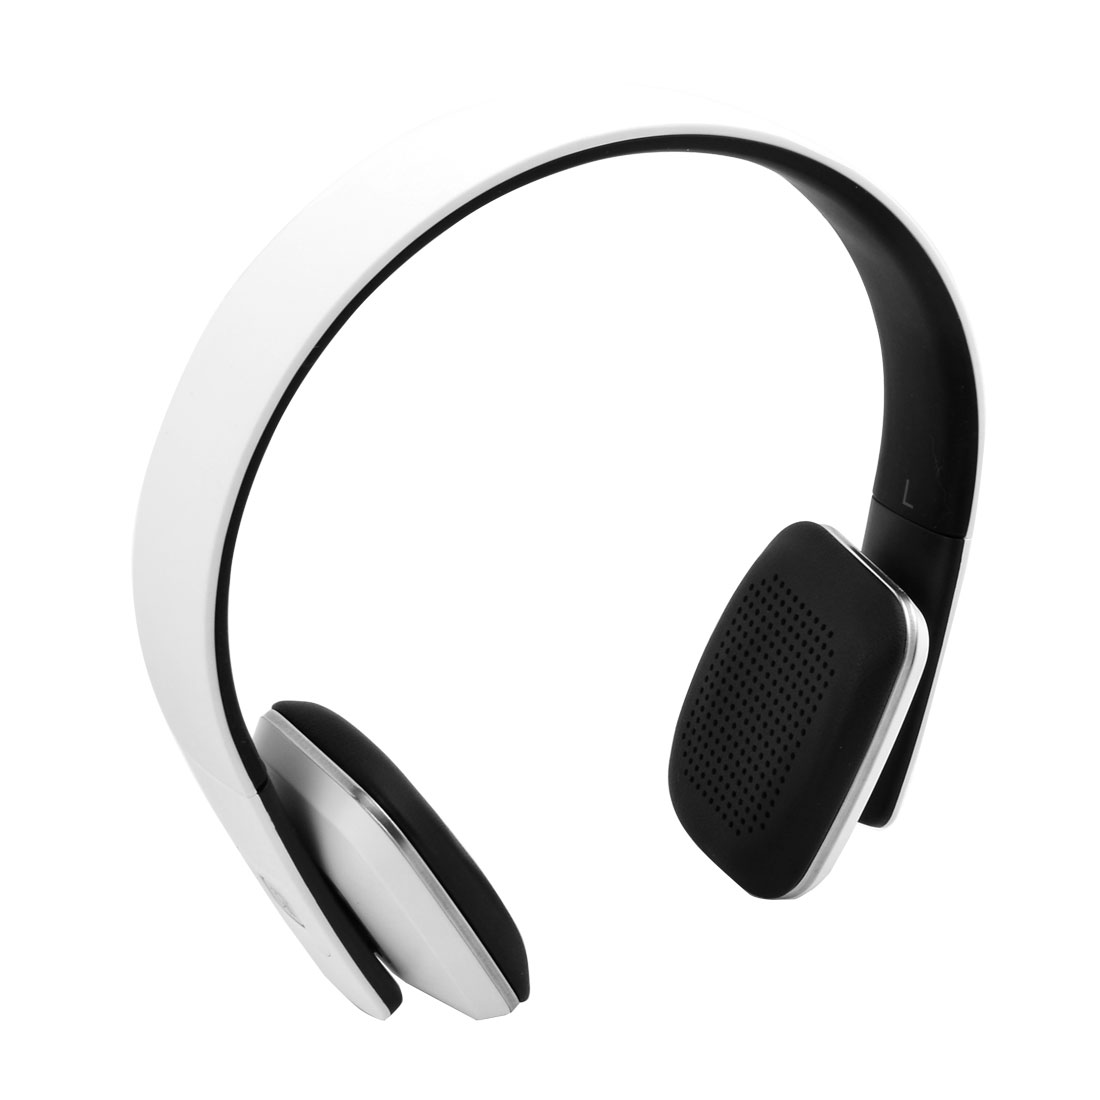 PC Tablet Noise Reduction Stereo Wireless bluetooth Headphones Headset White w USB Cable